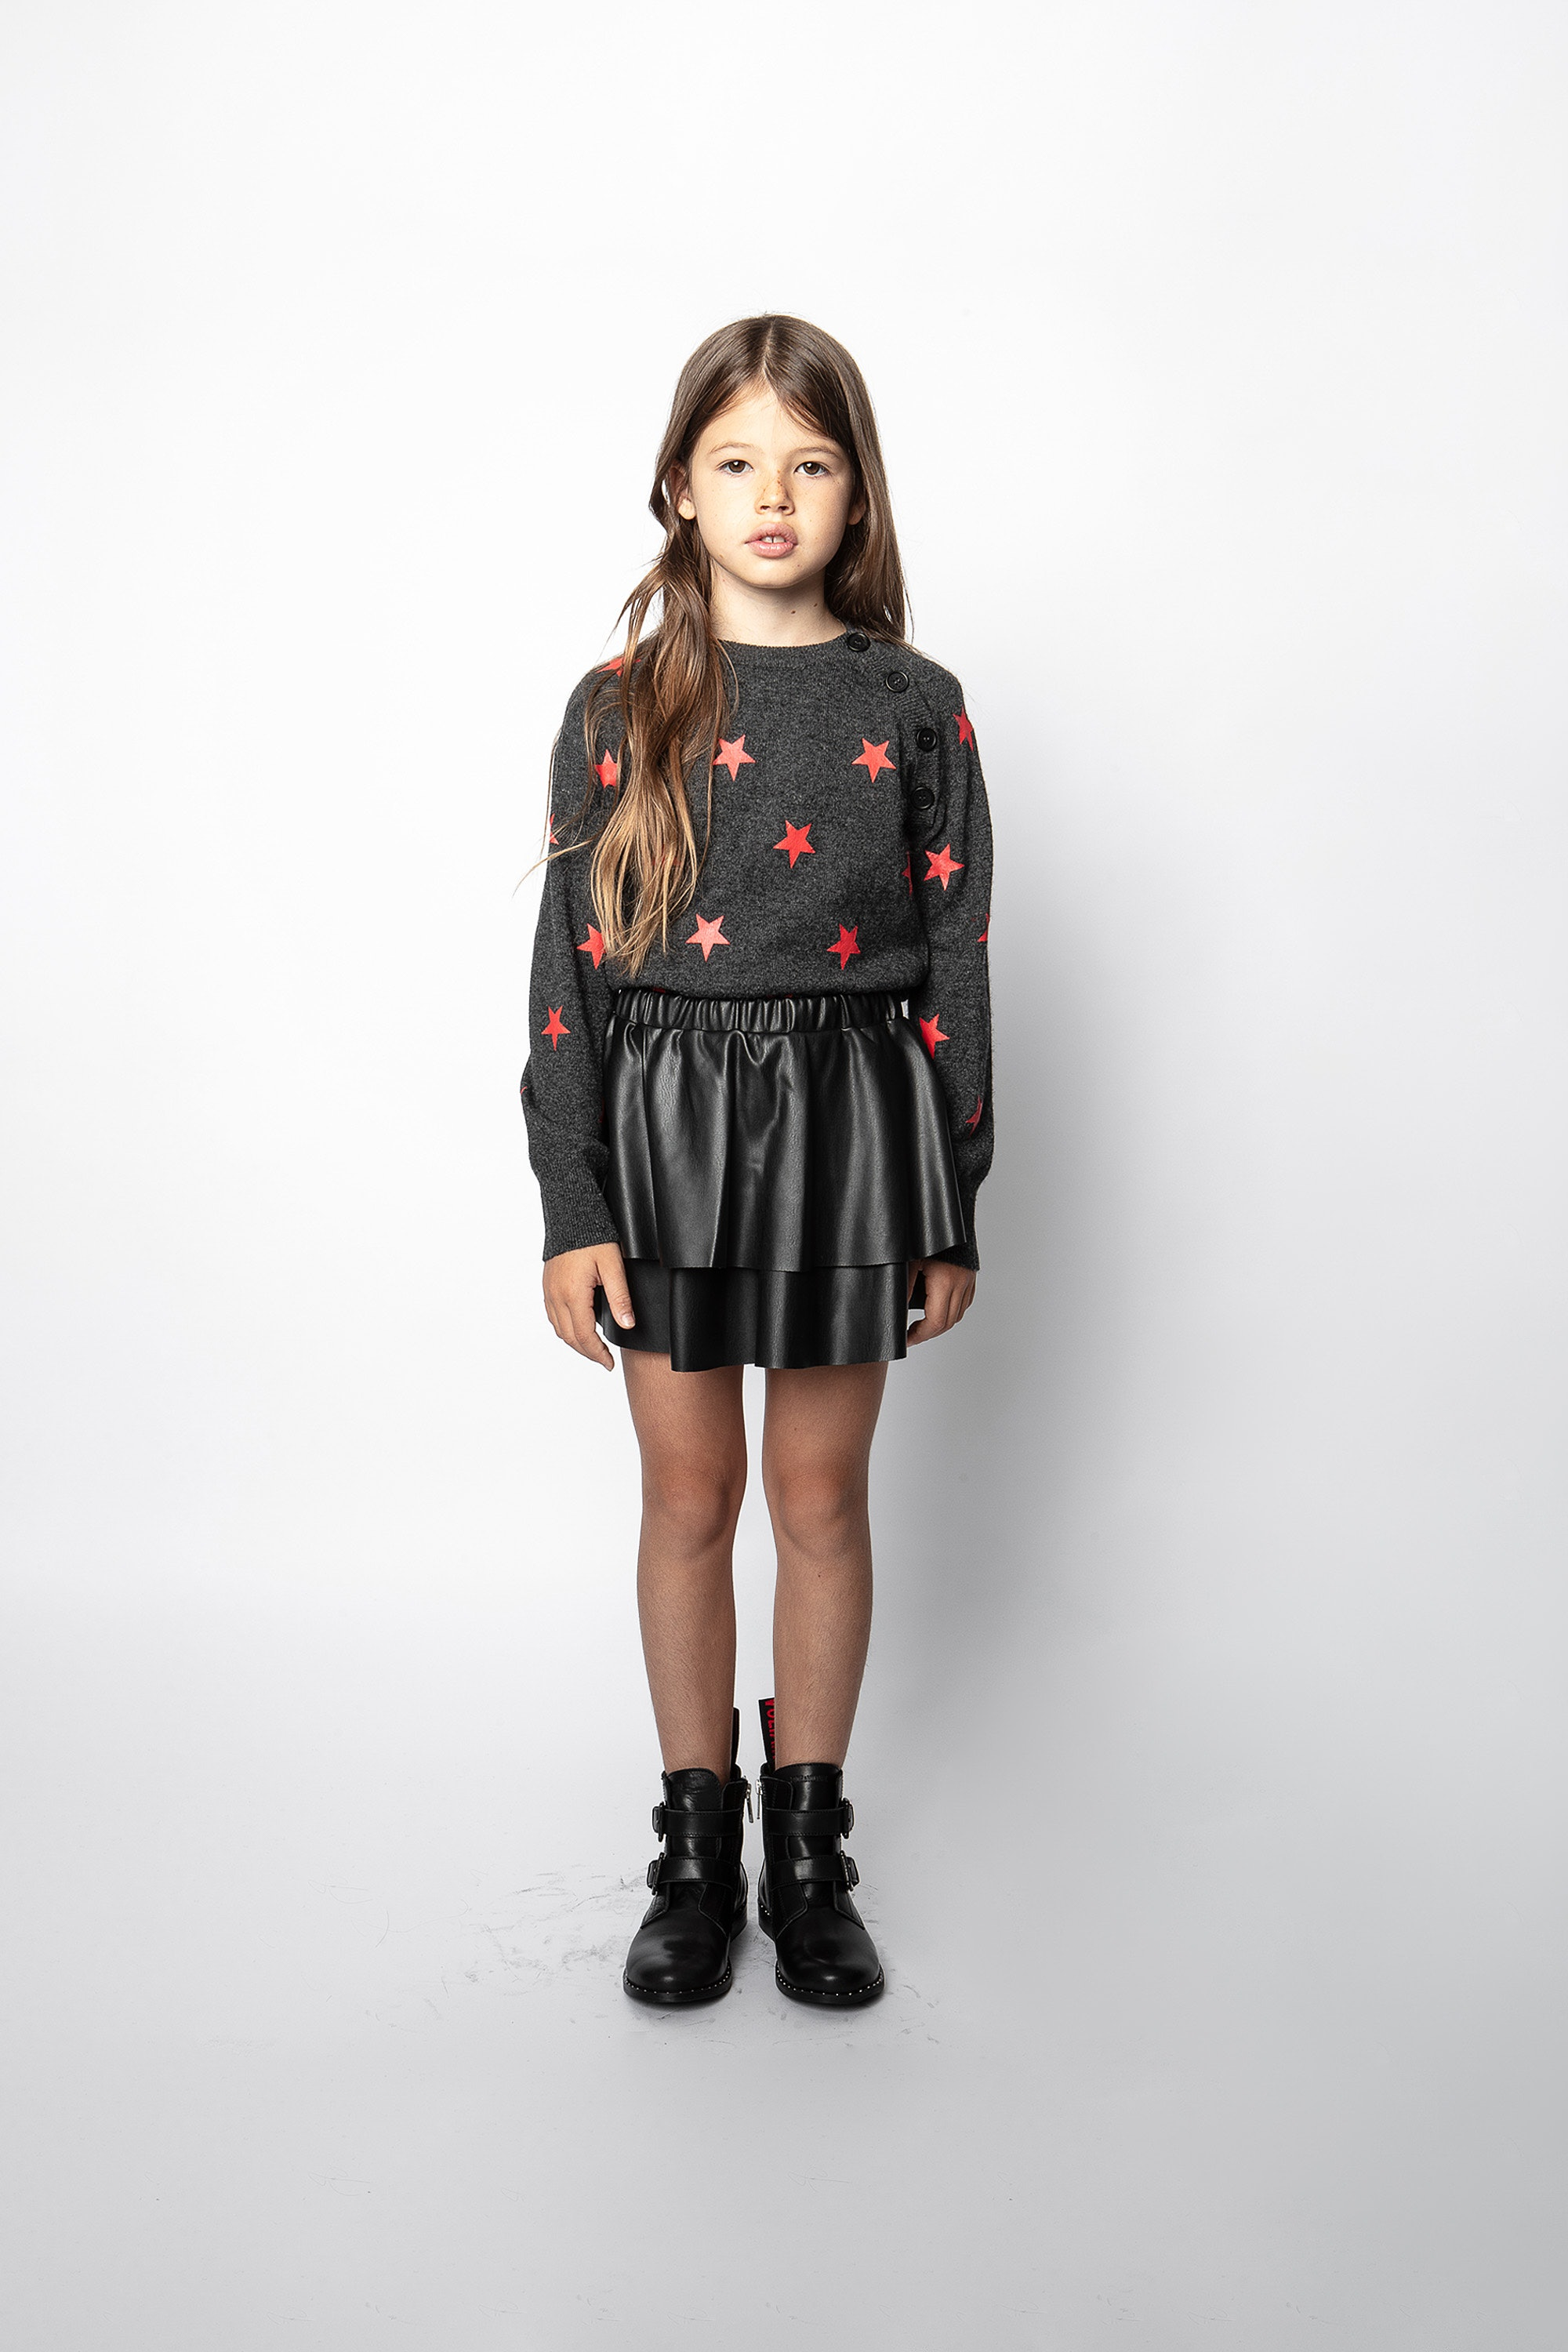 Ava Enfant Sweater